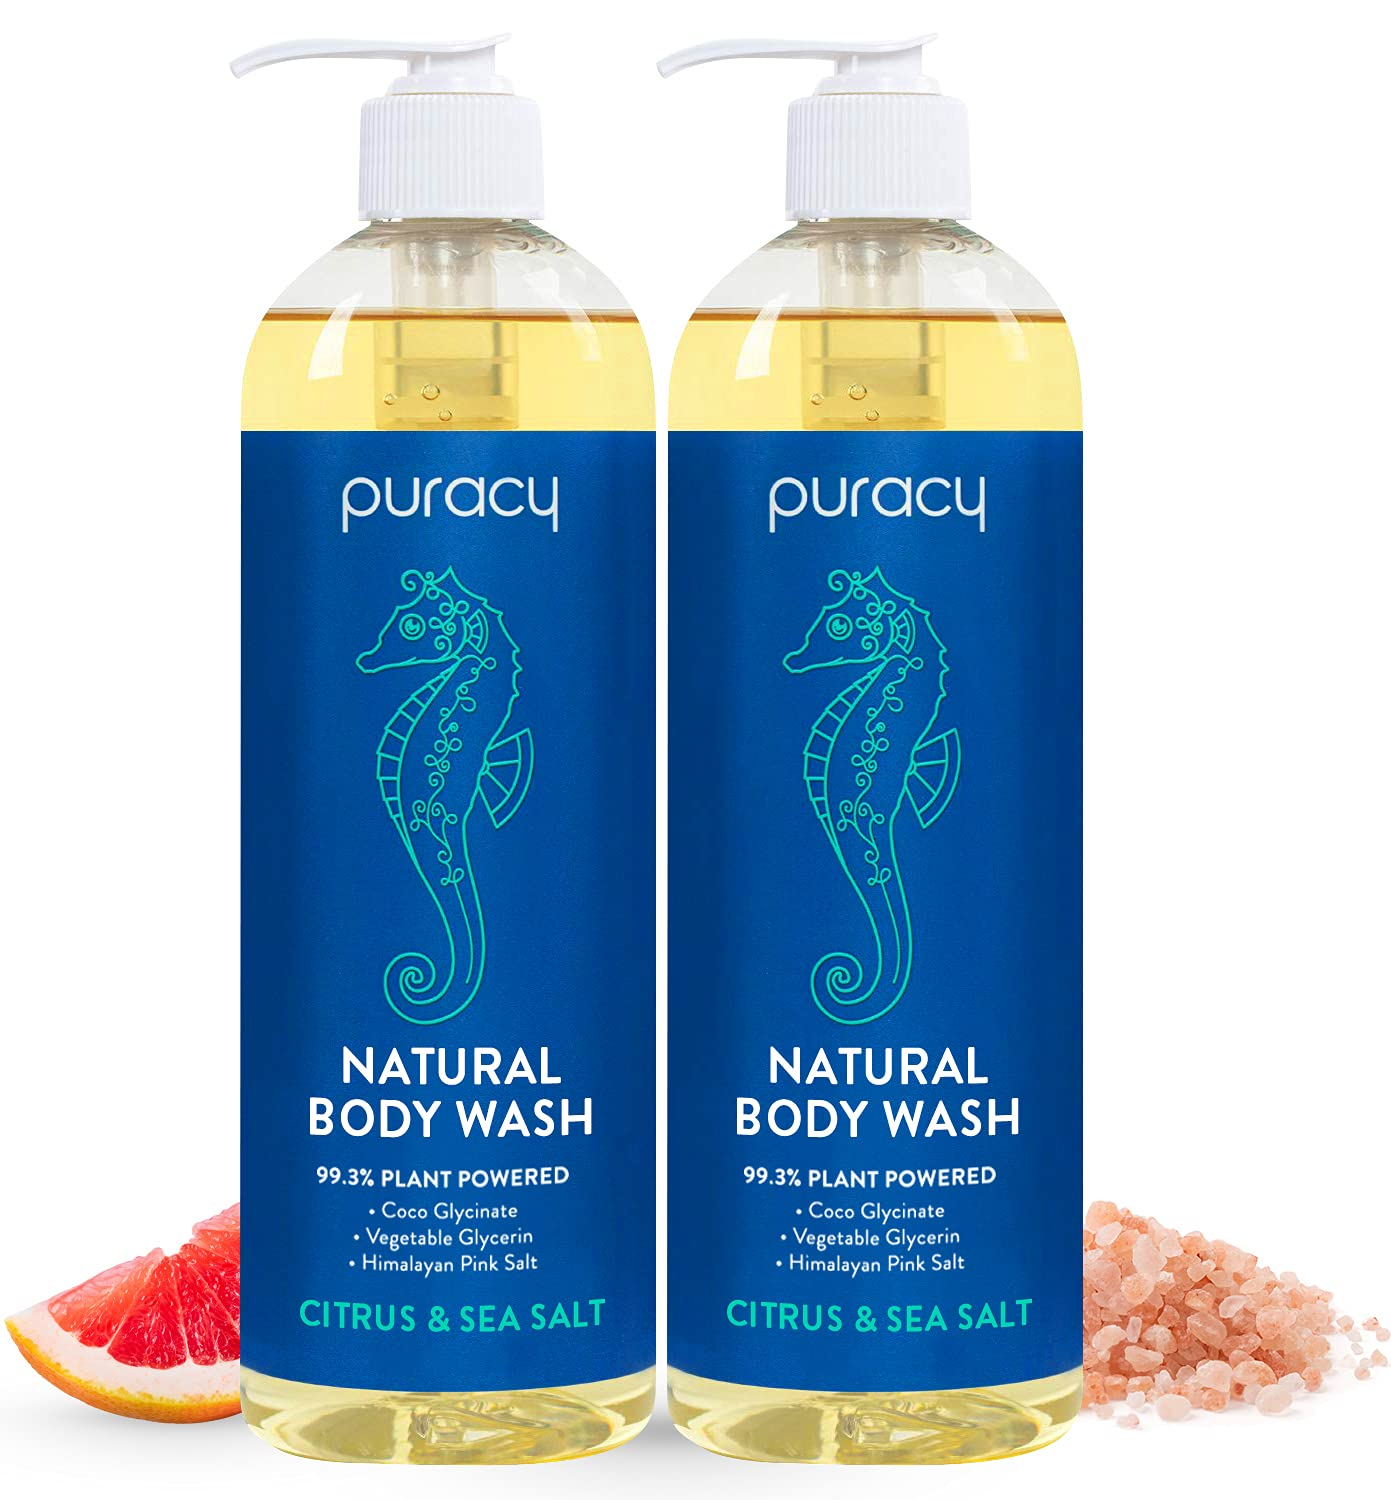 Two bottles of Puracy Natural Body Wash